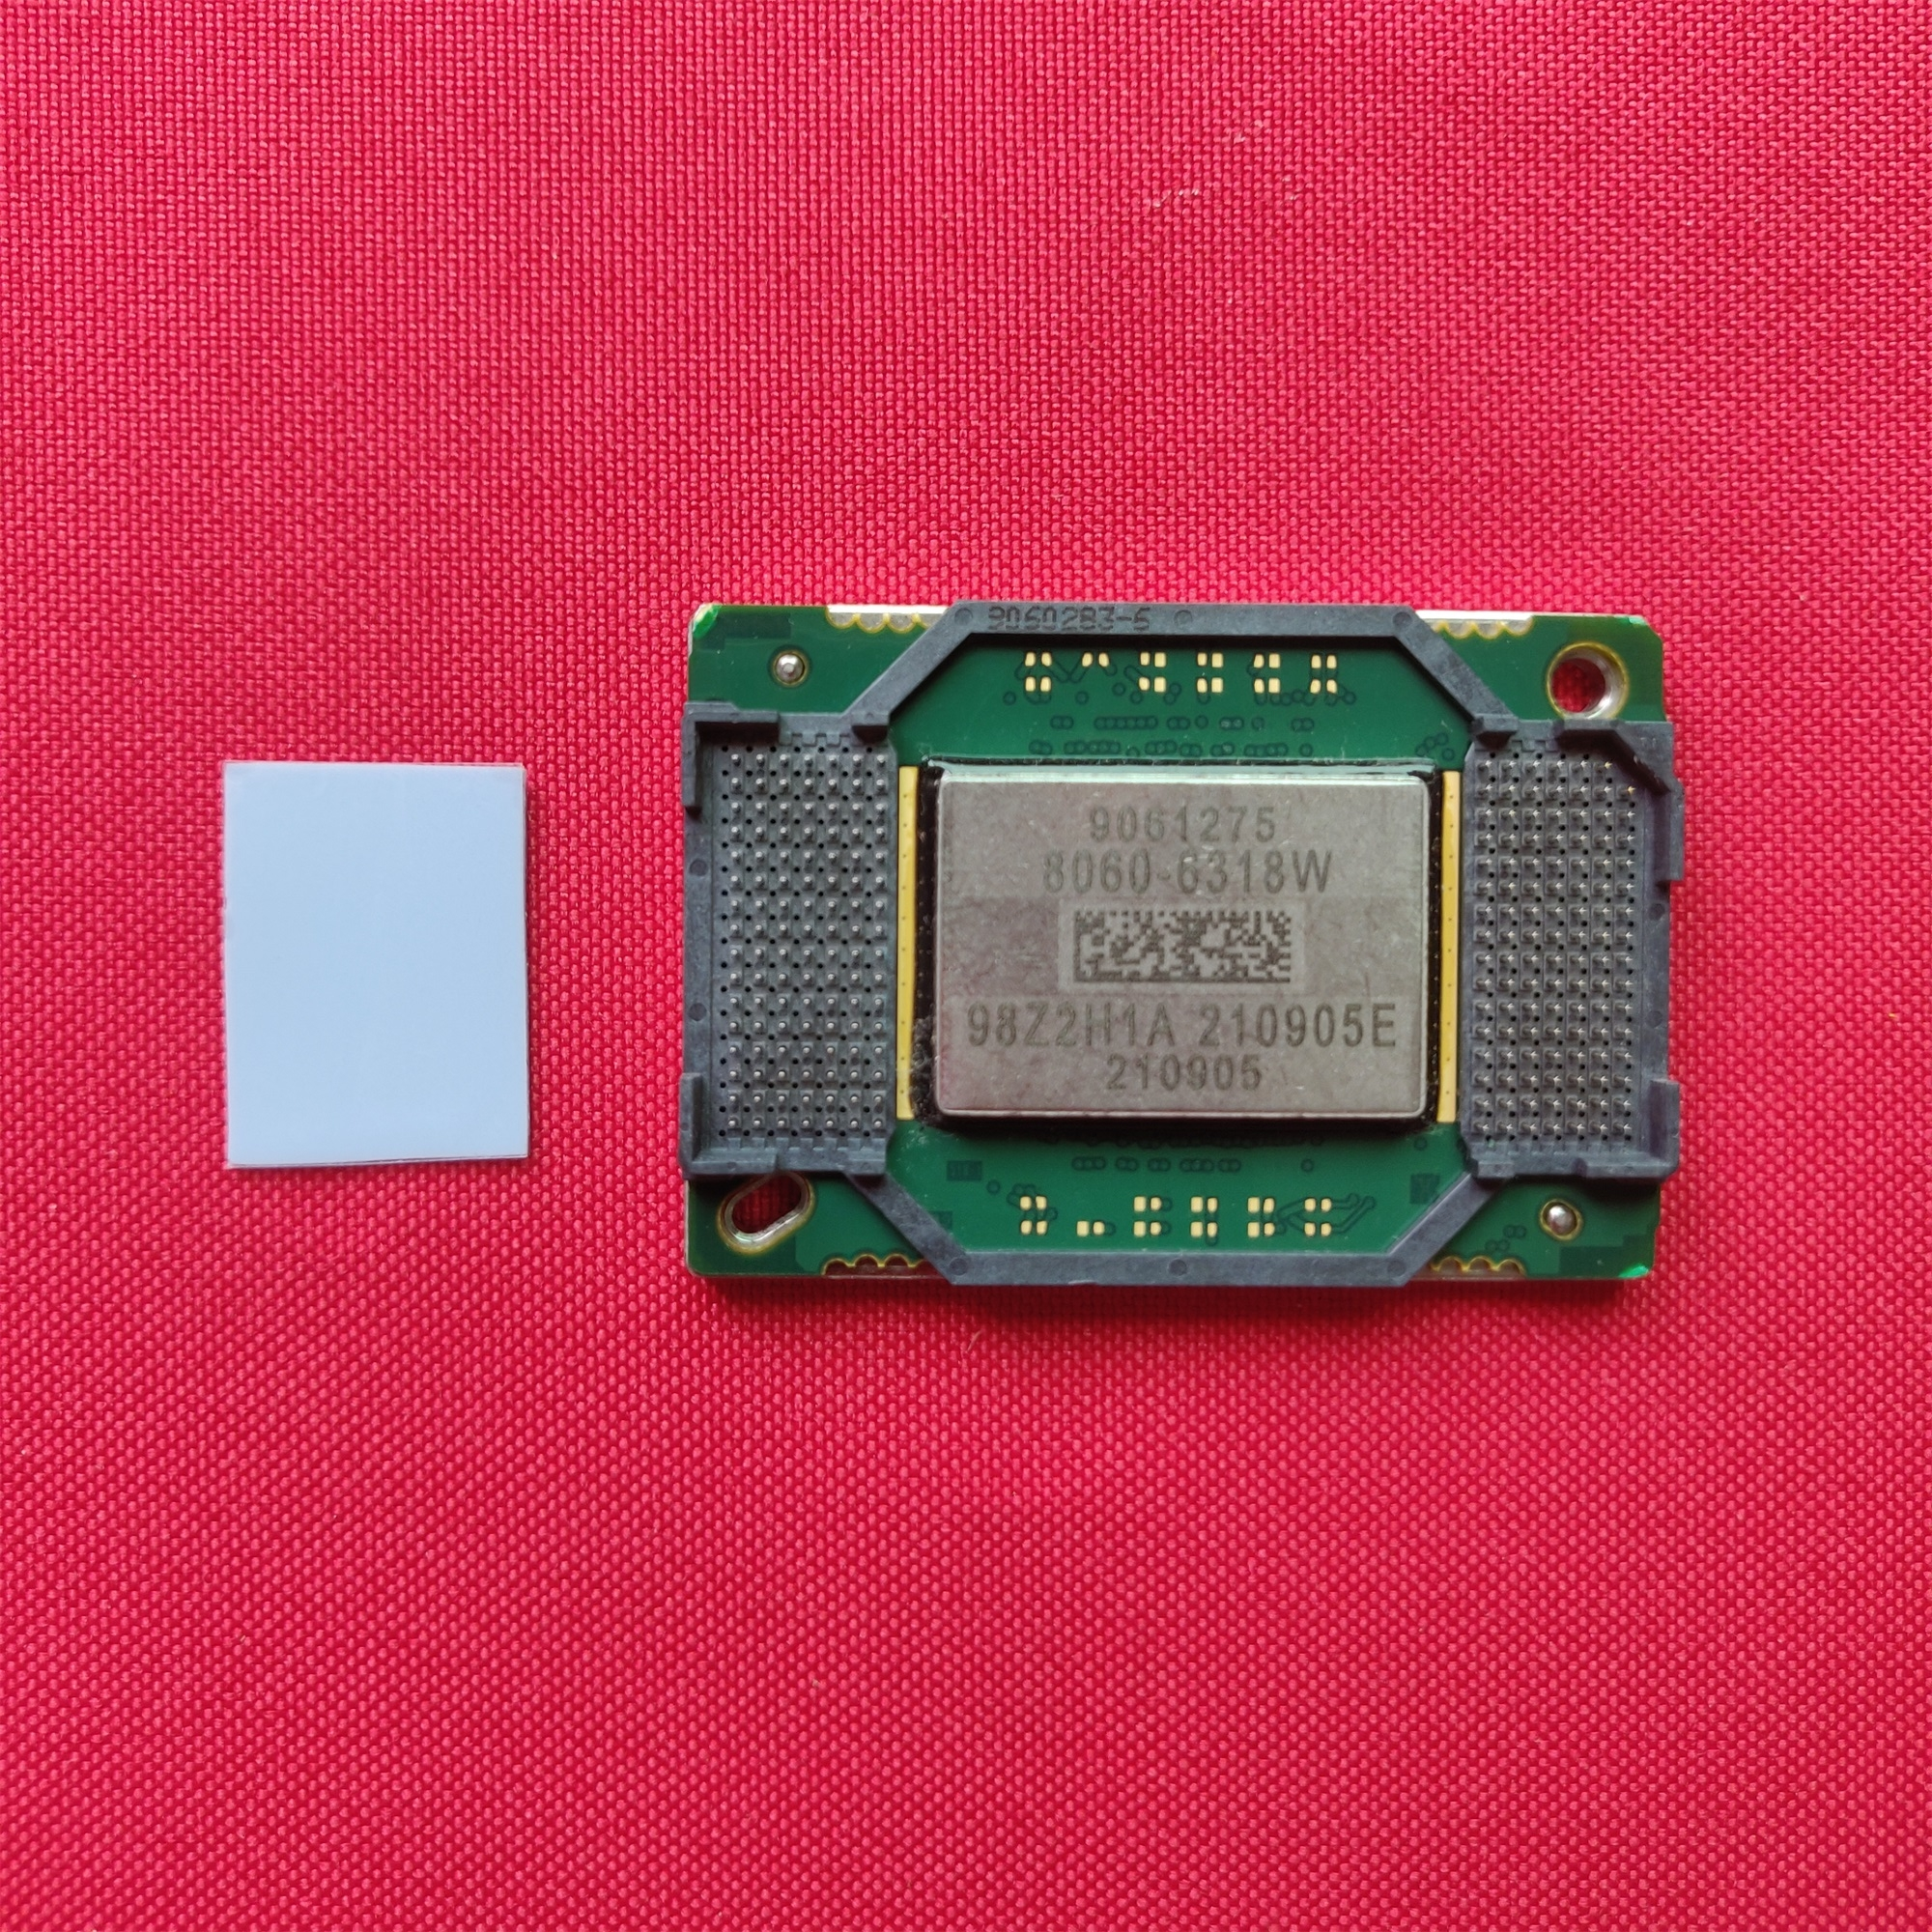 DLP projector DMD chip 8060-6318W   8060-6319W Competitive Big for projectors projection